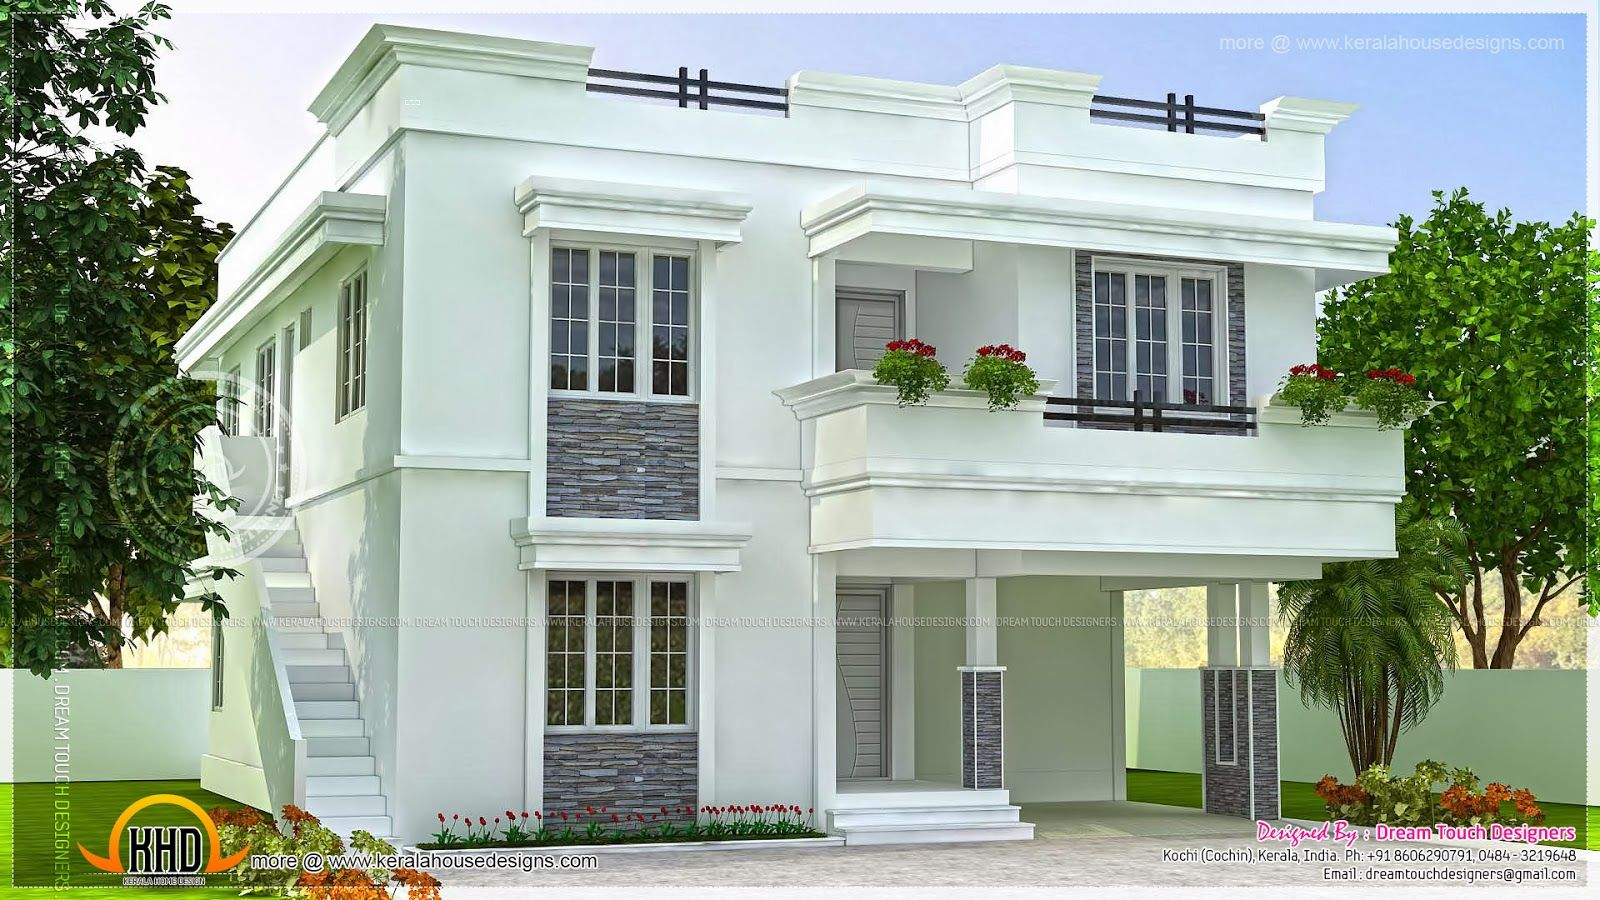 Modern beautiful home modern beautiful home design indian for Home designs exterior styles